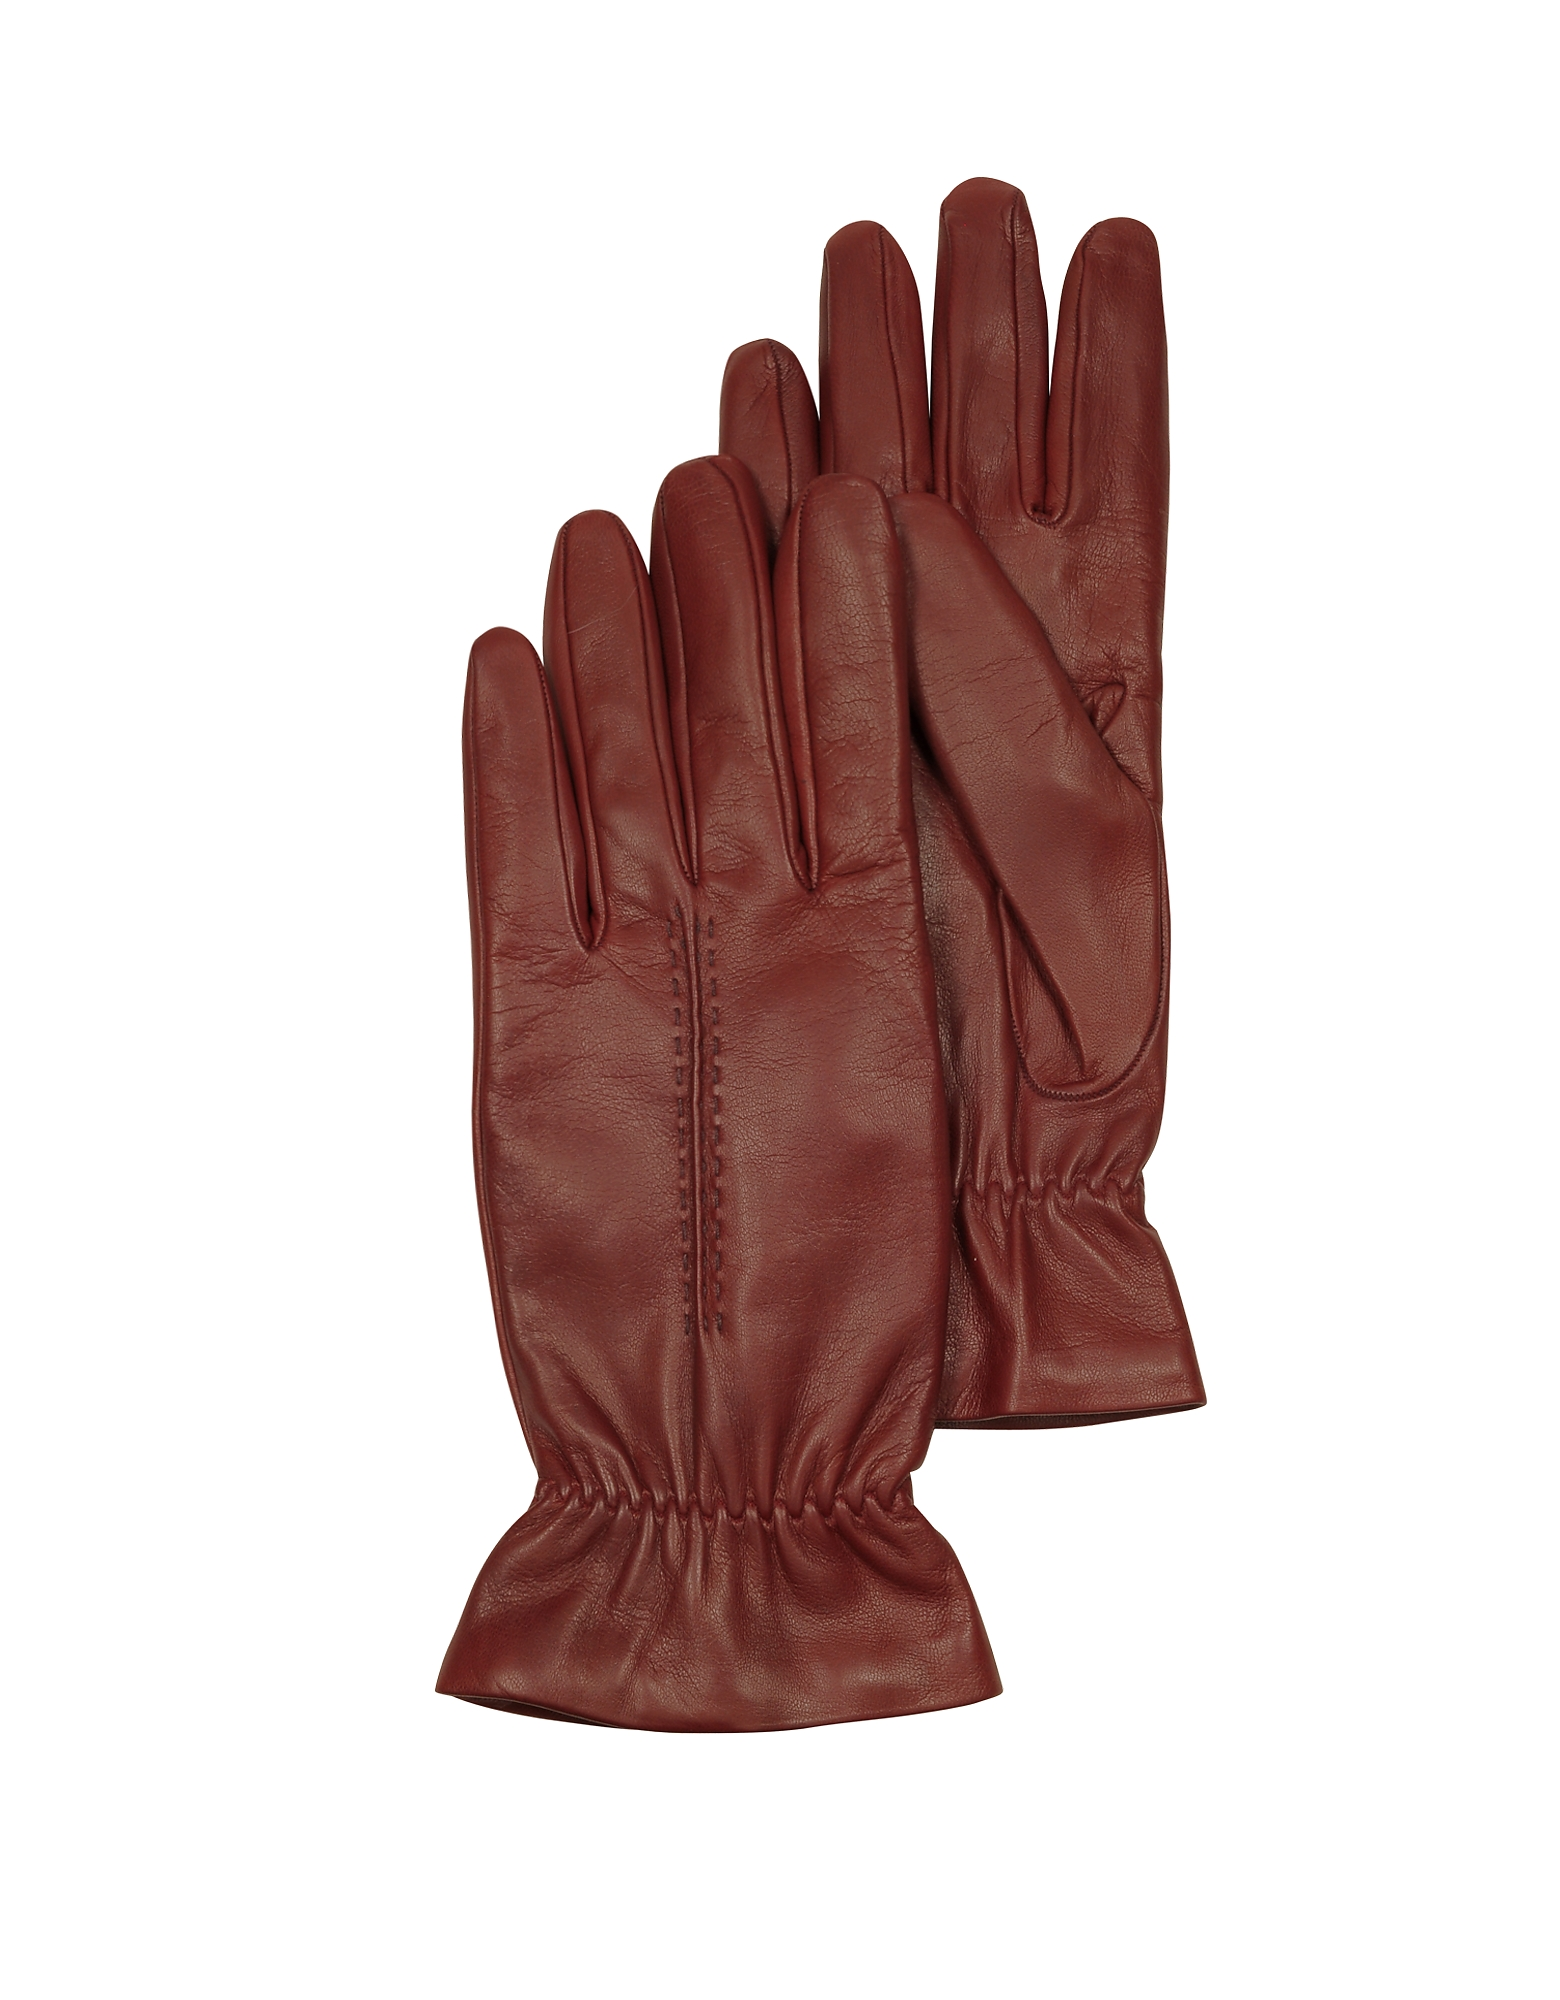 Forzieri Women's Gloves, Burgundy Leather Women's Gloves w/Wool Lining